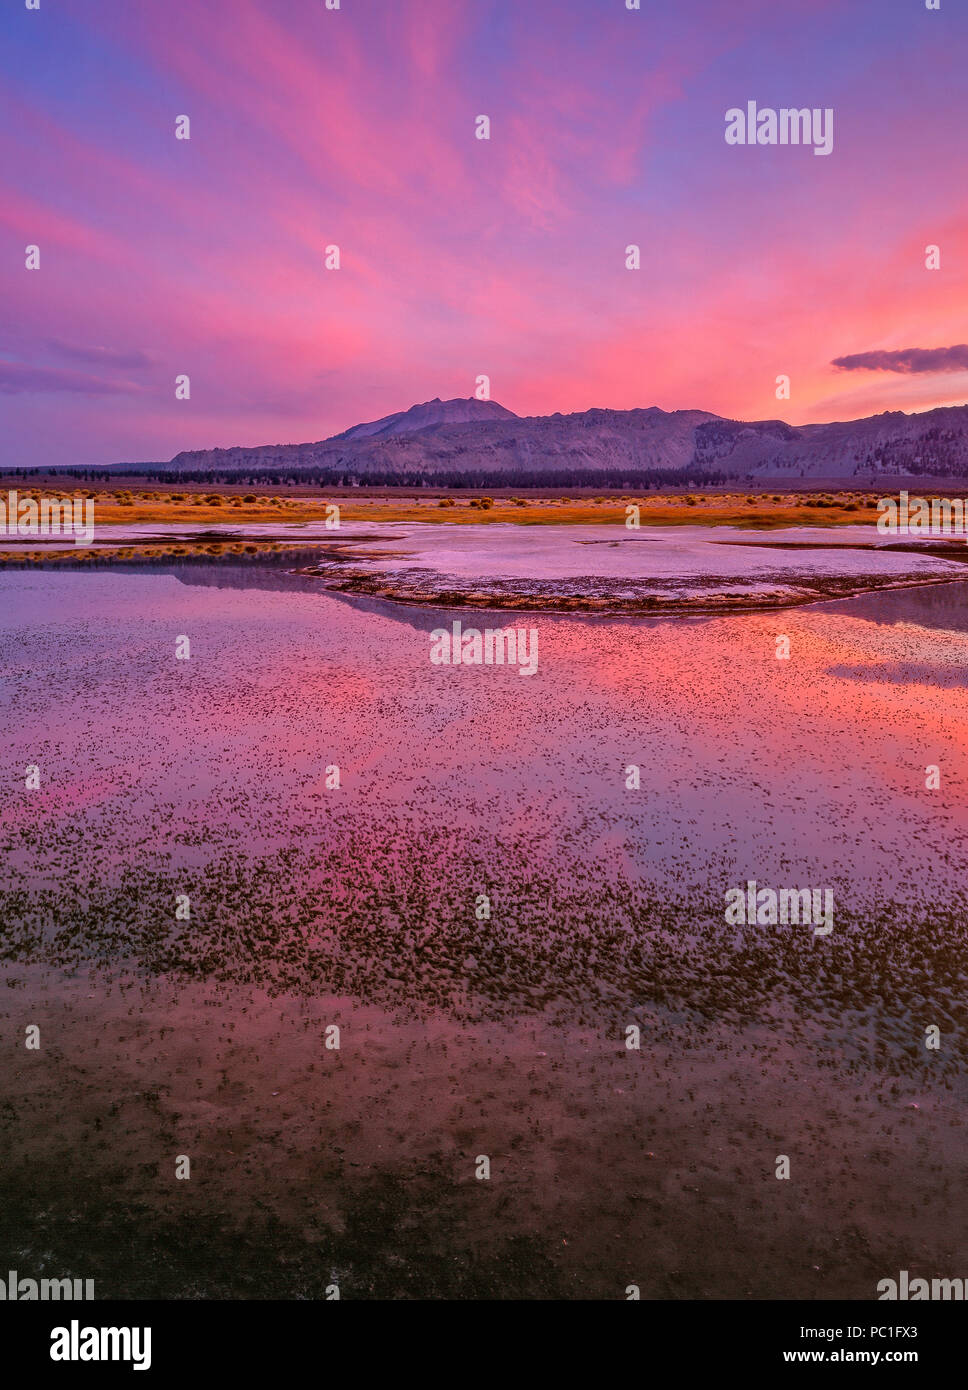 Dusk, Brineflies, Wetlands, Mono Lake, Mono Basin National Forest Scenic Area, Inyo National Forest, California - Stock Image